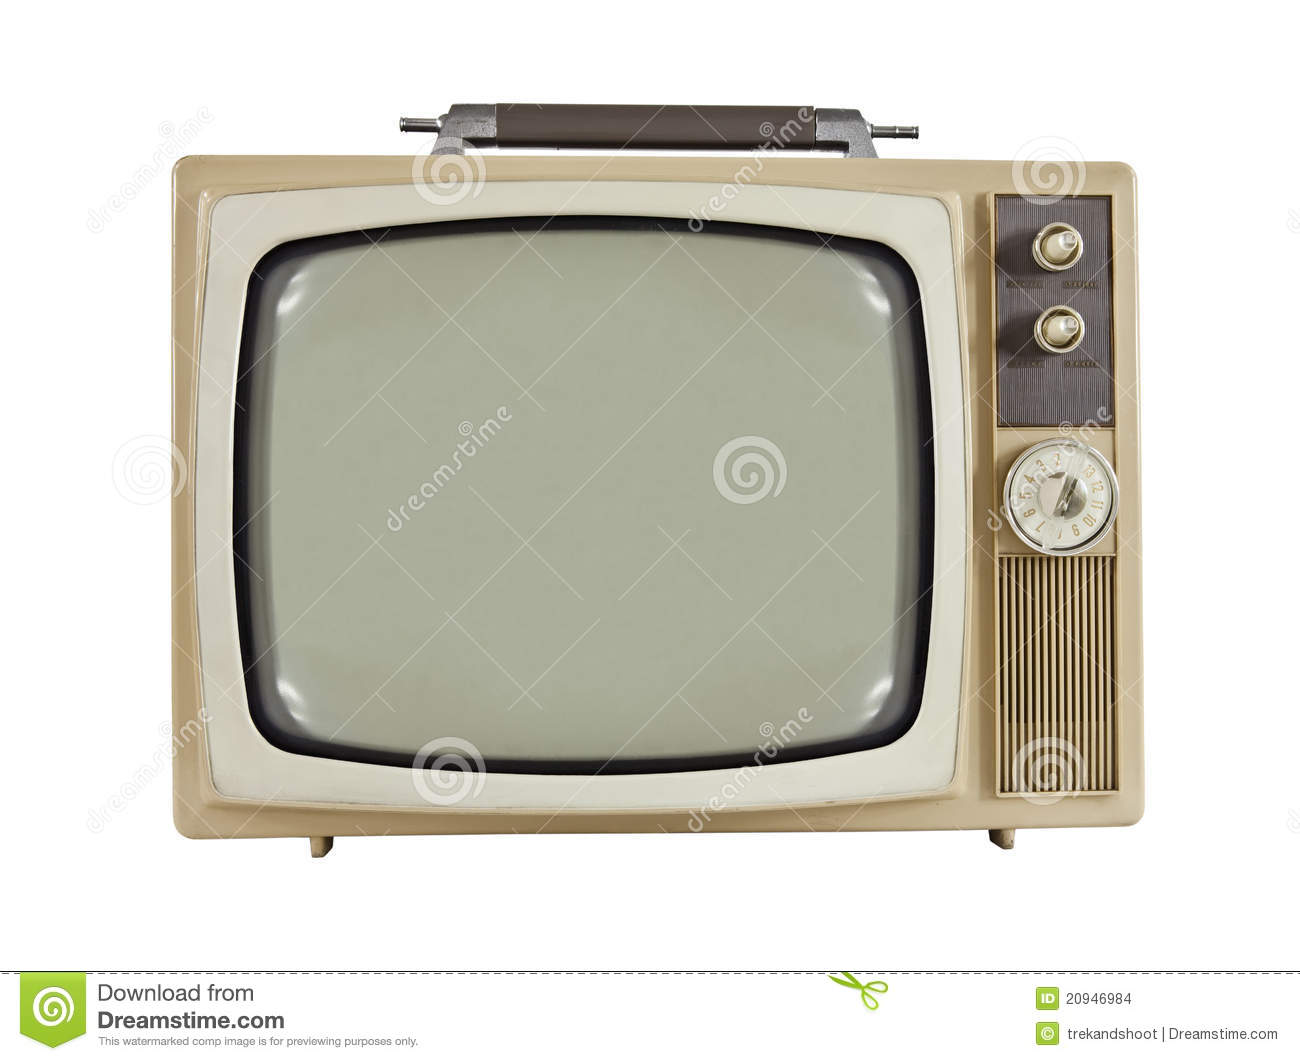 Vintage 1960s/1970s? Magnavox Space-Age Portable ...  |1960s Portable Televisions